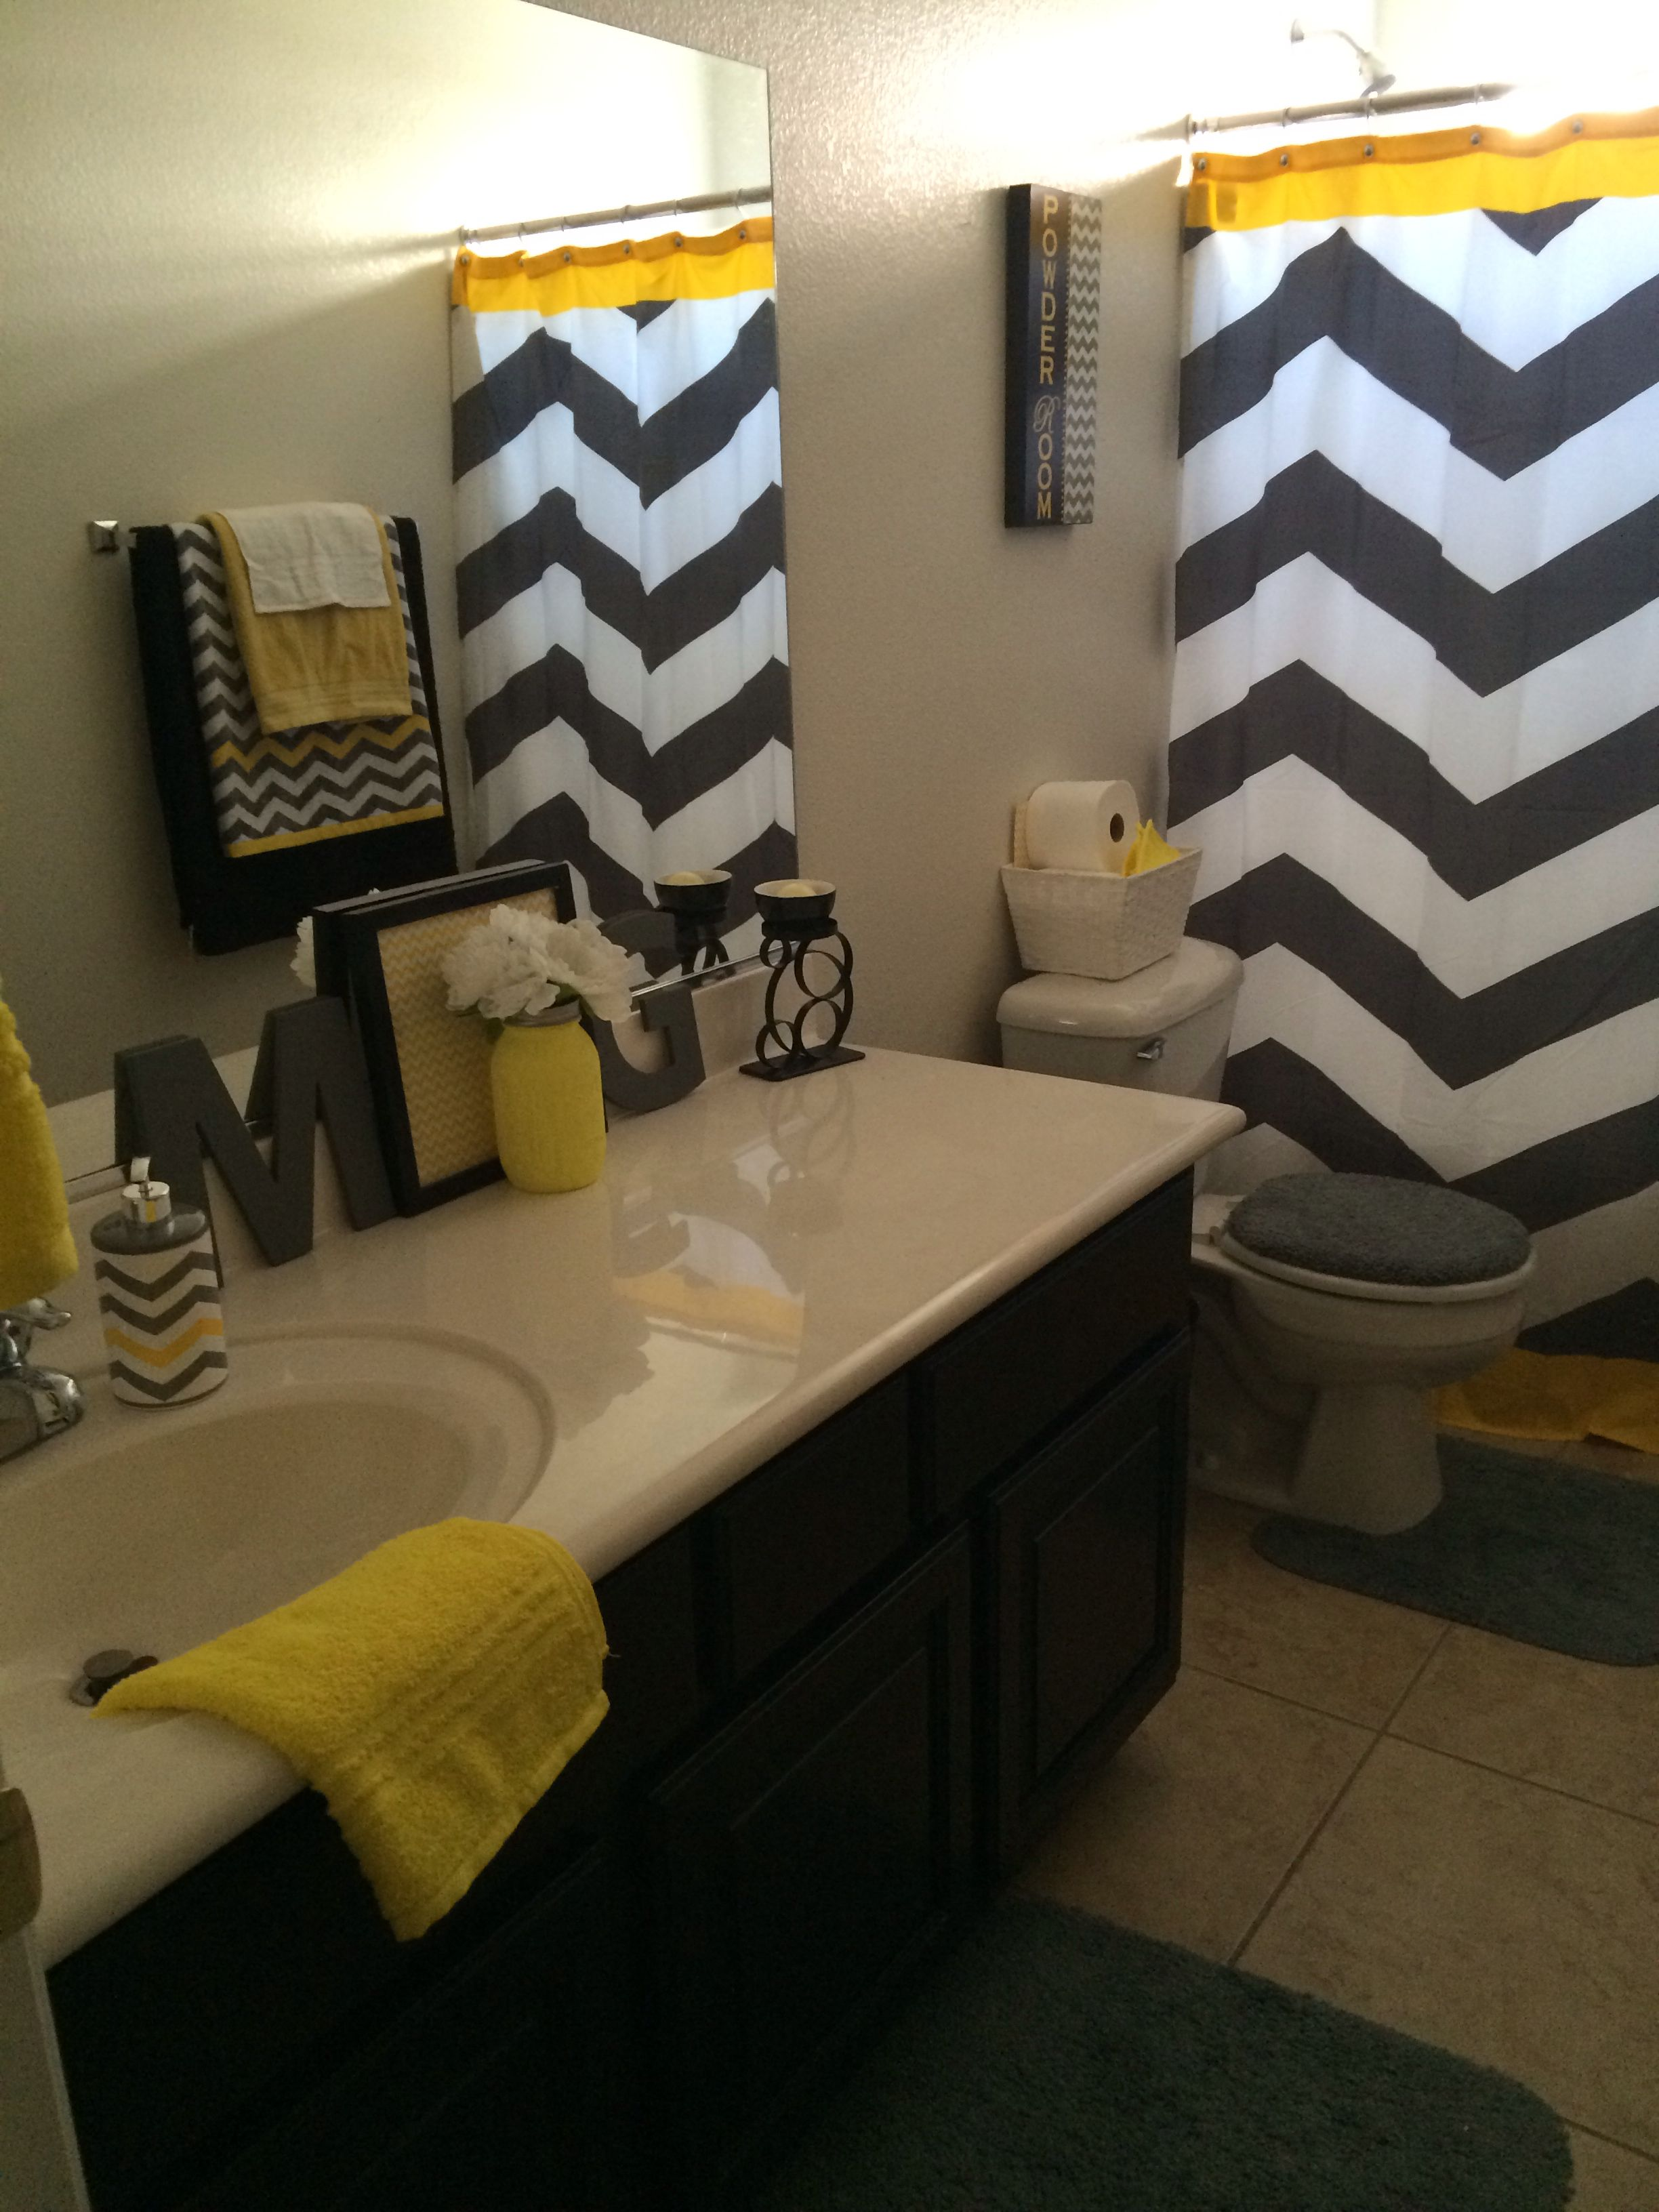 My New Cheerful Gender Neutral Bathroom Yellow Black Grey And White